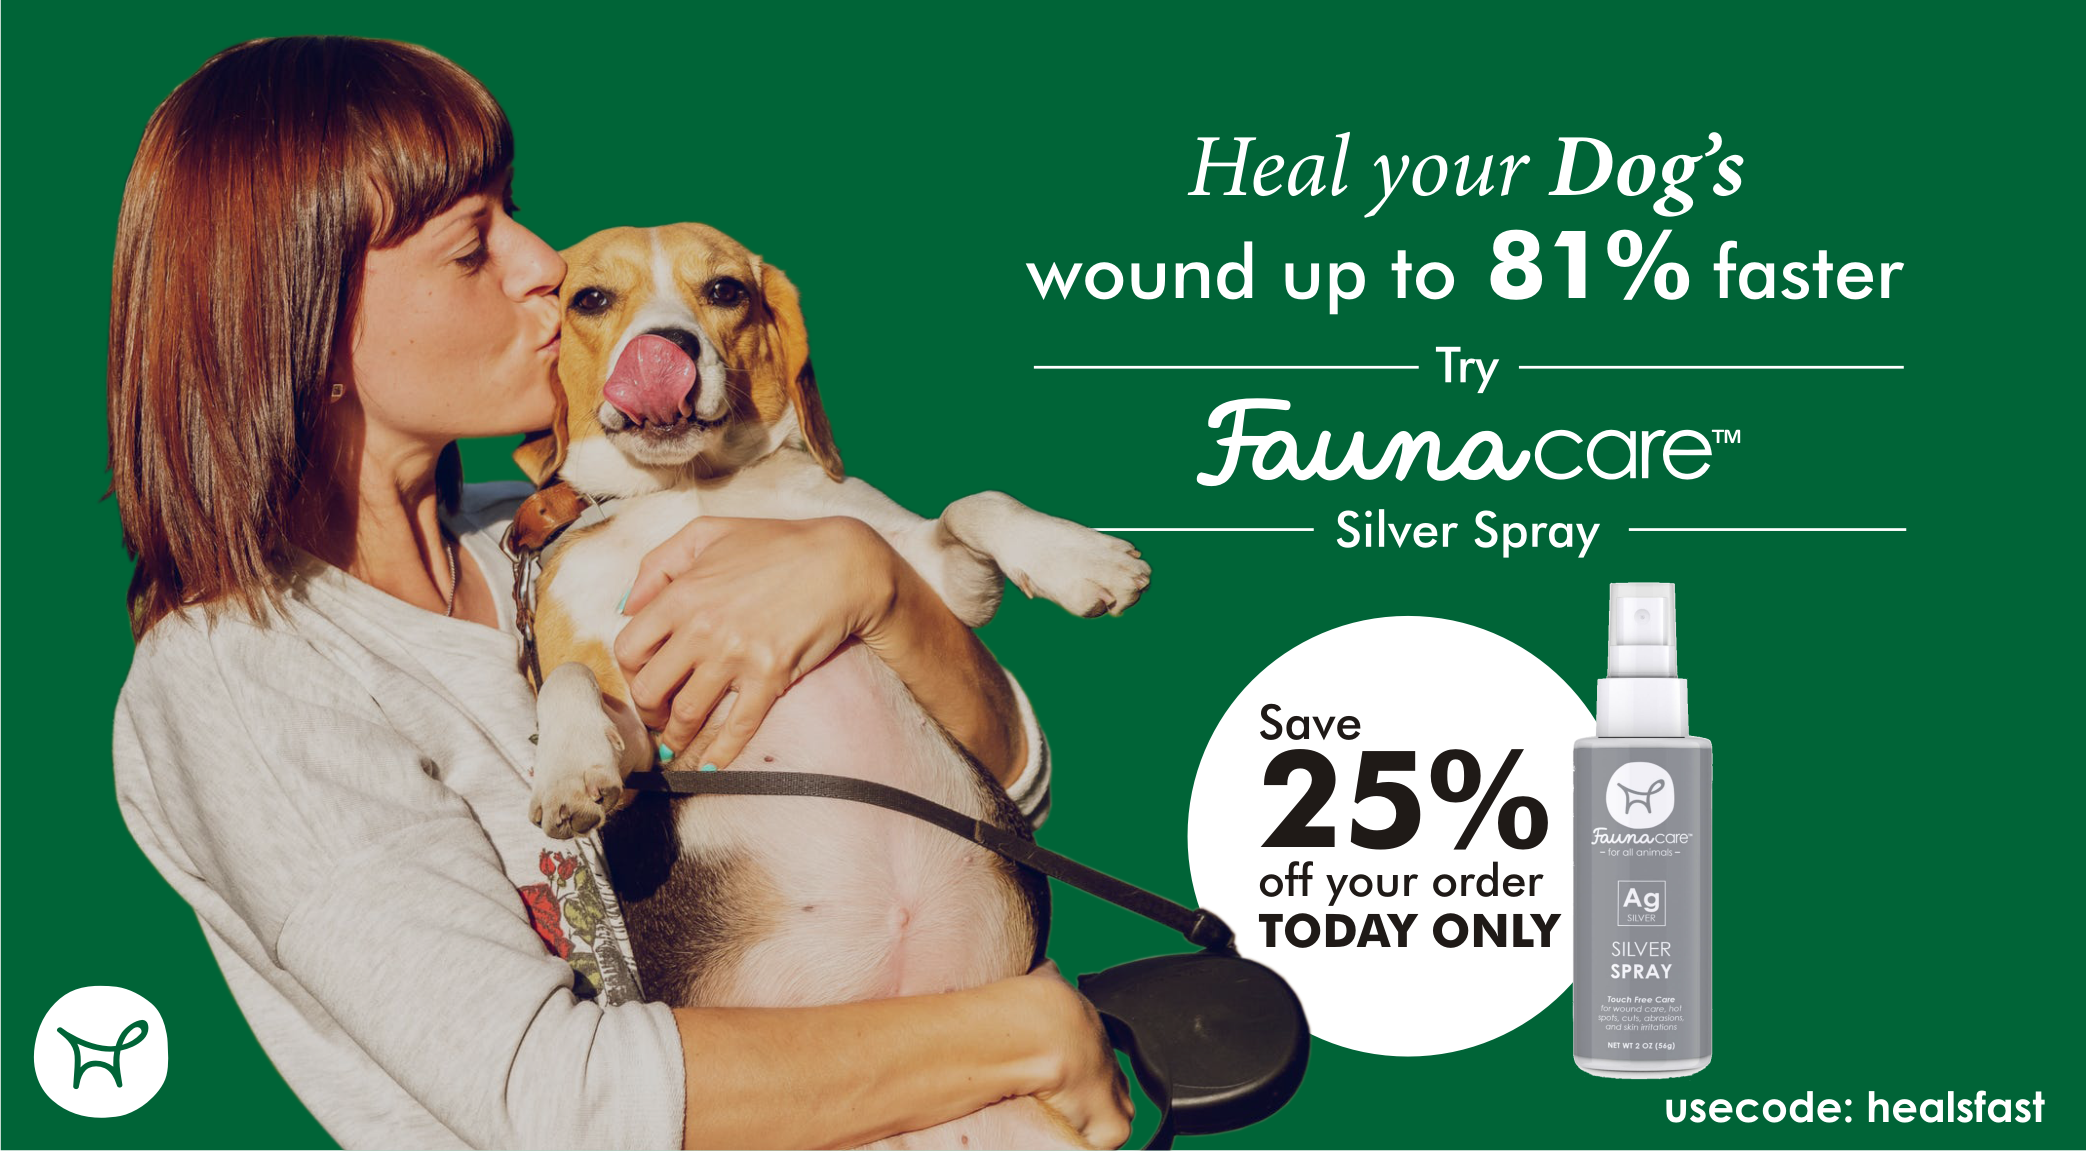 FaunaCare silver spray wound healing advertisement